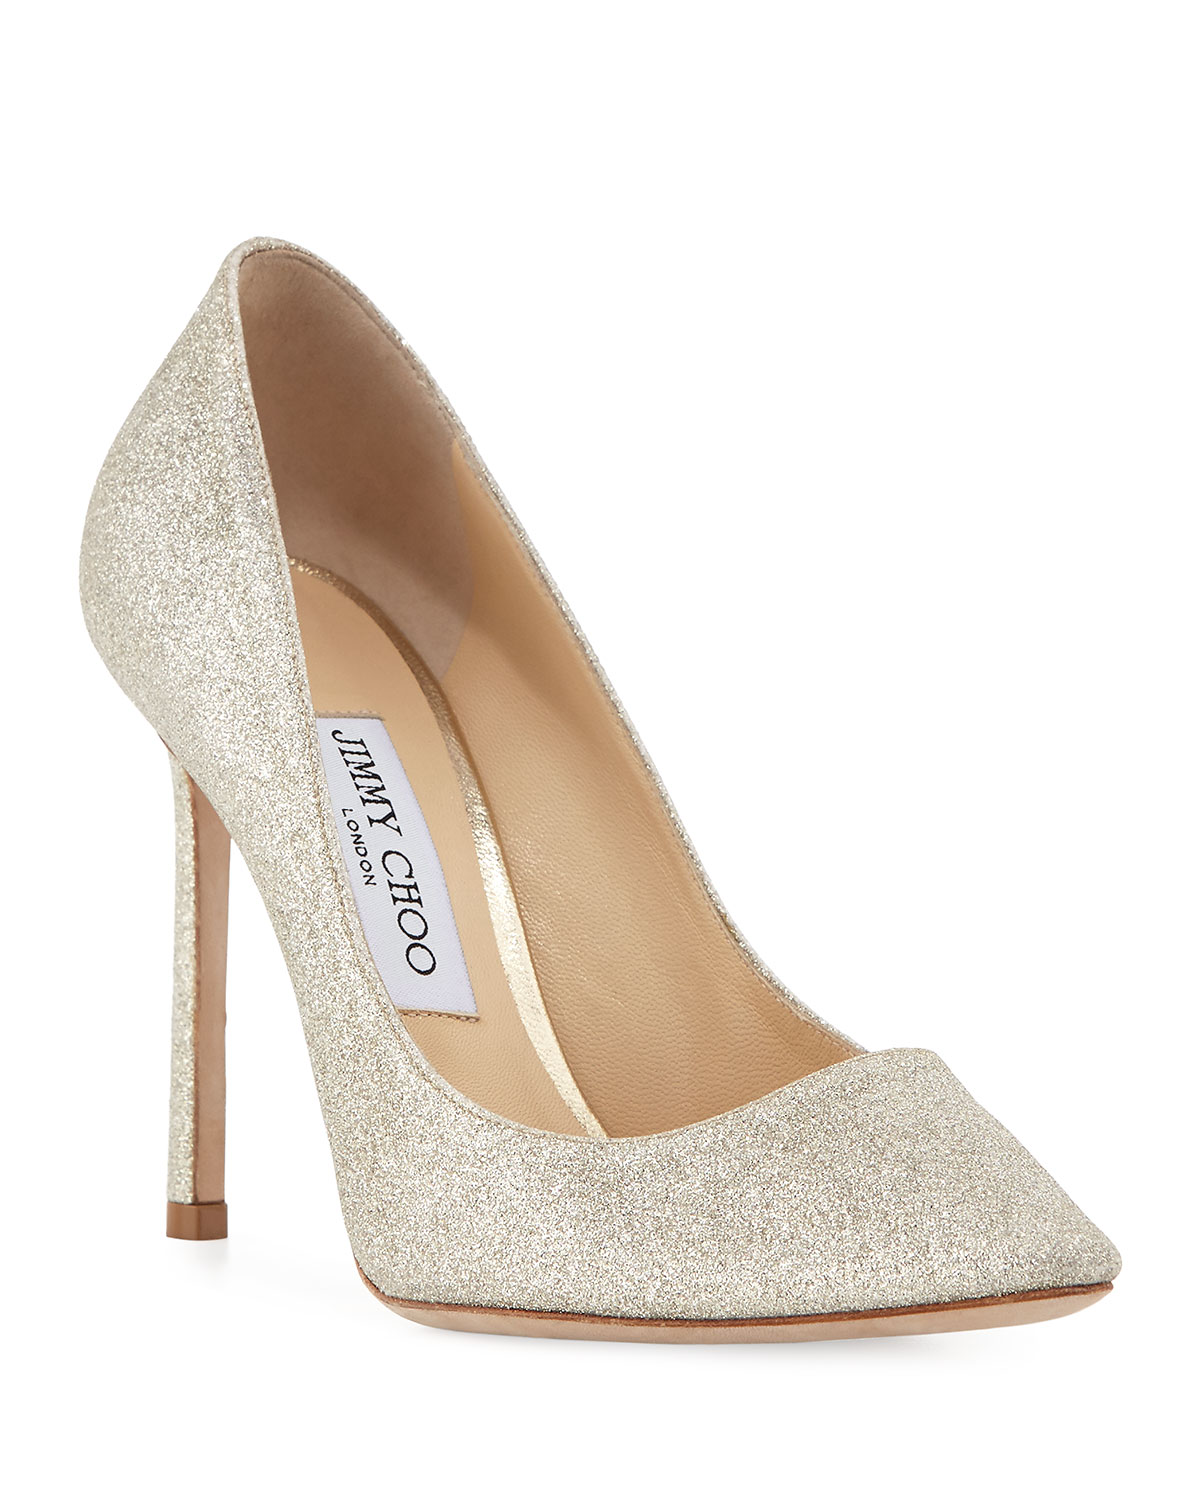 2018 shoes pretty cheap check out Jimmy Choo Romy Glittered 100mm Pumps, Silver | Neiman Marcus